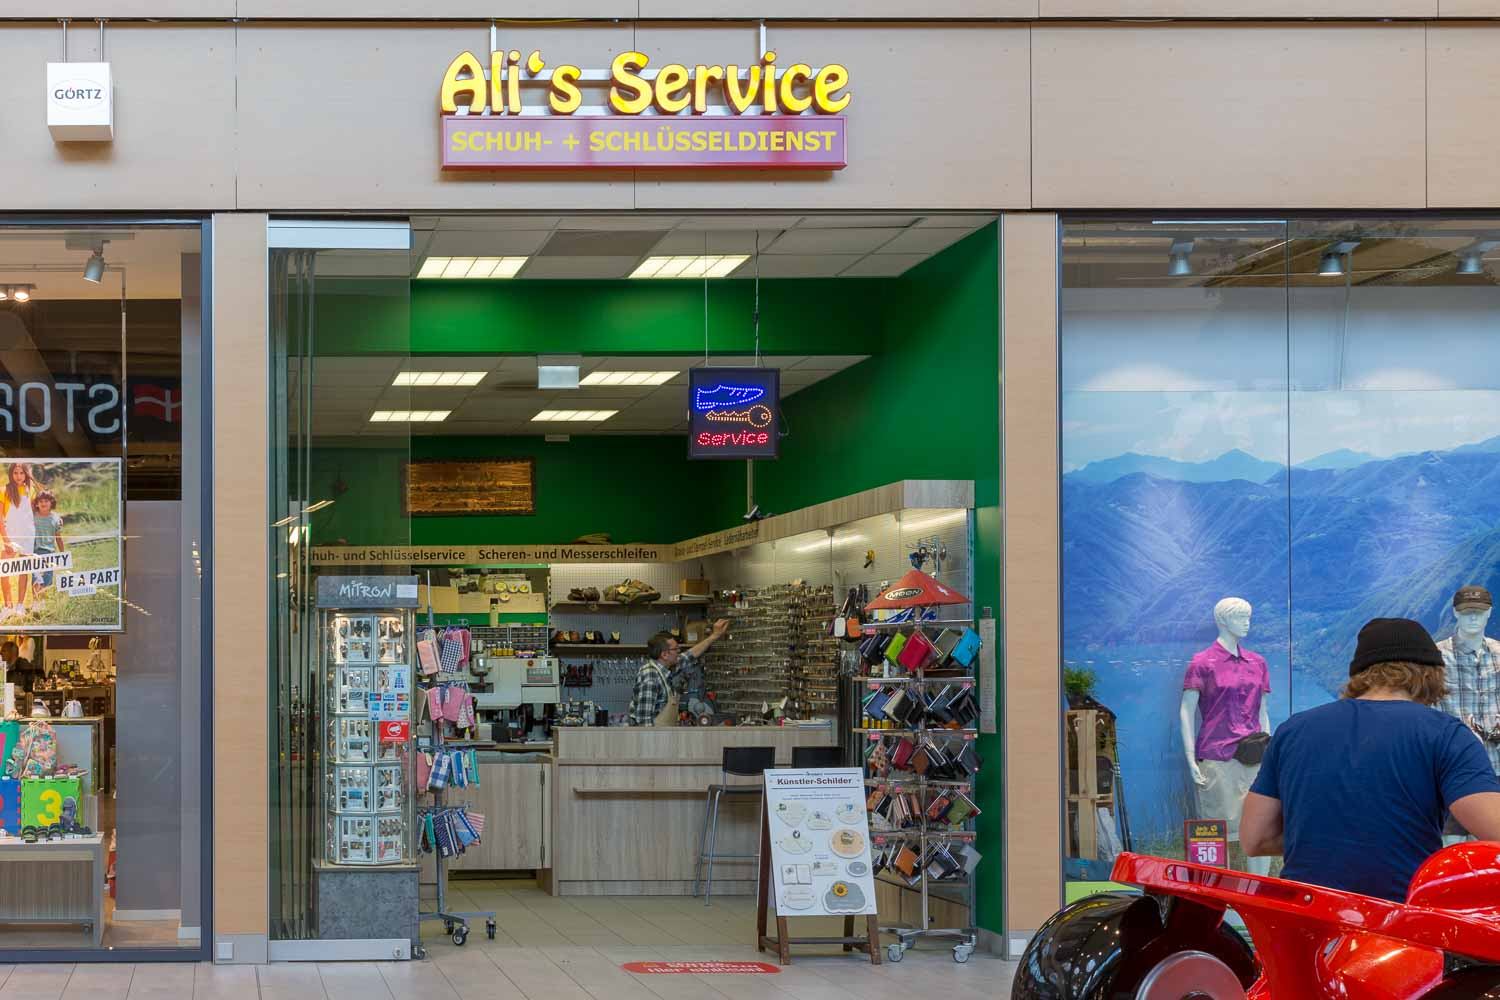 Alis Service im LUV SHOPPING in Lübeck